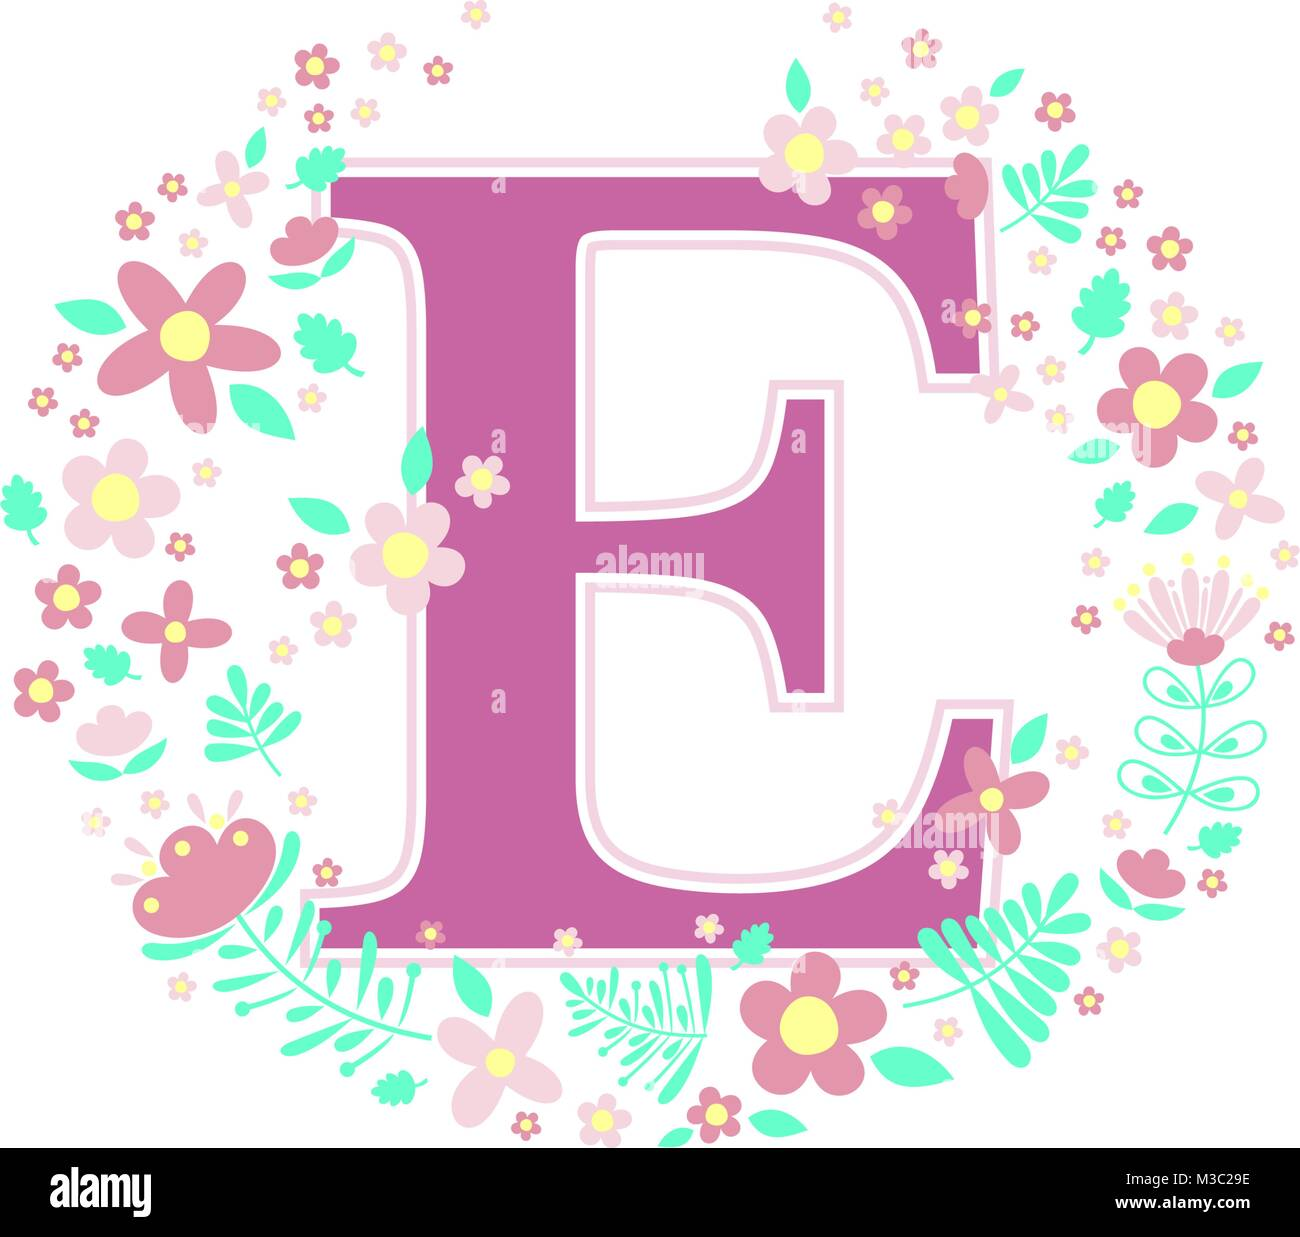 Letter E Stock Vector Images - Alamy